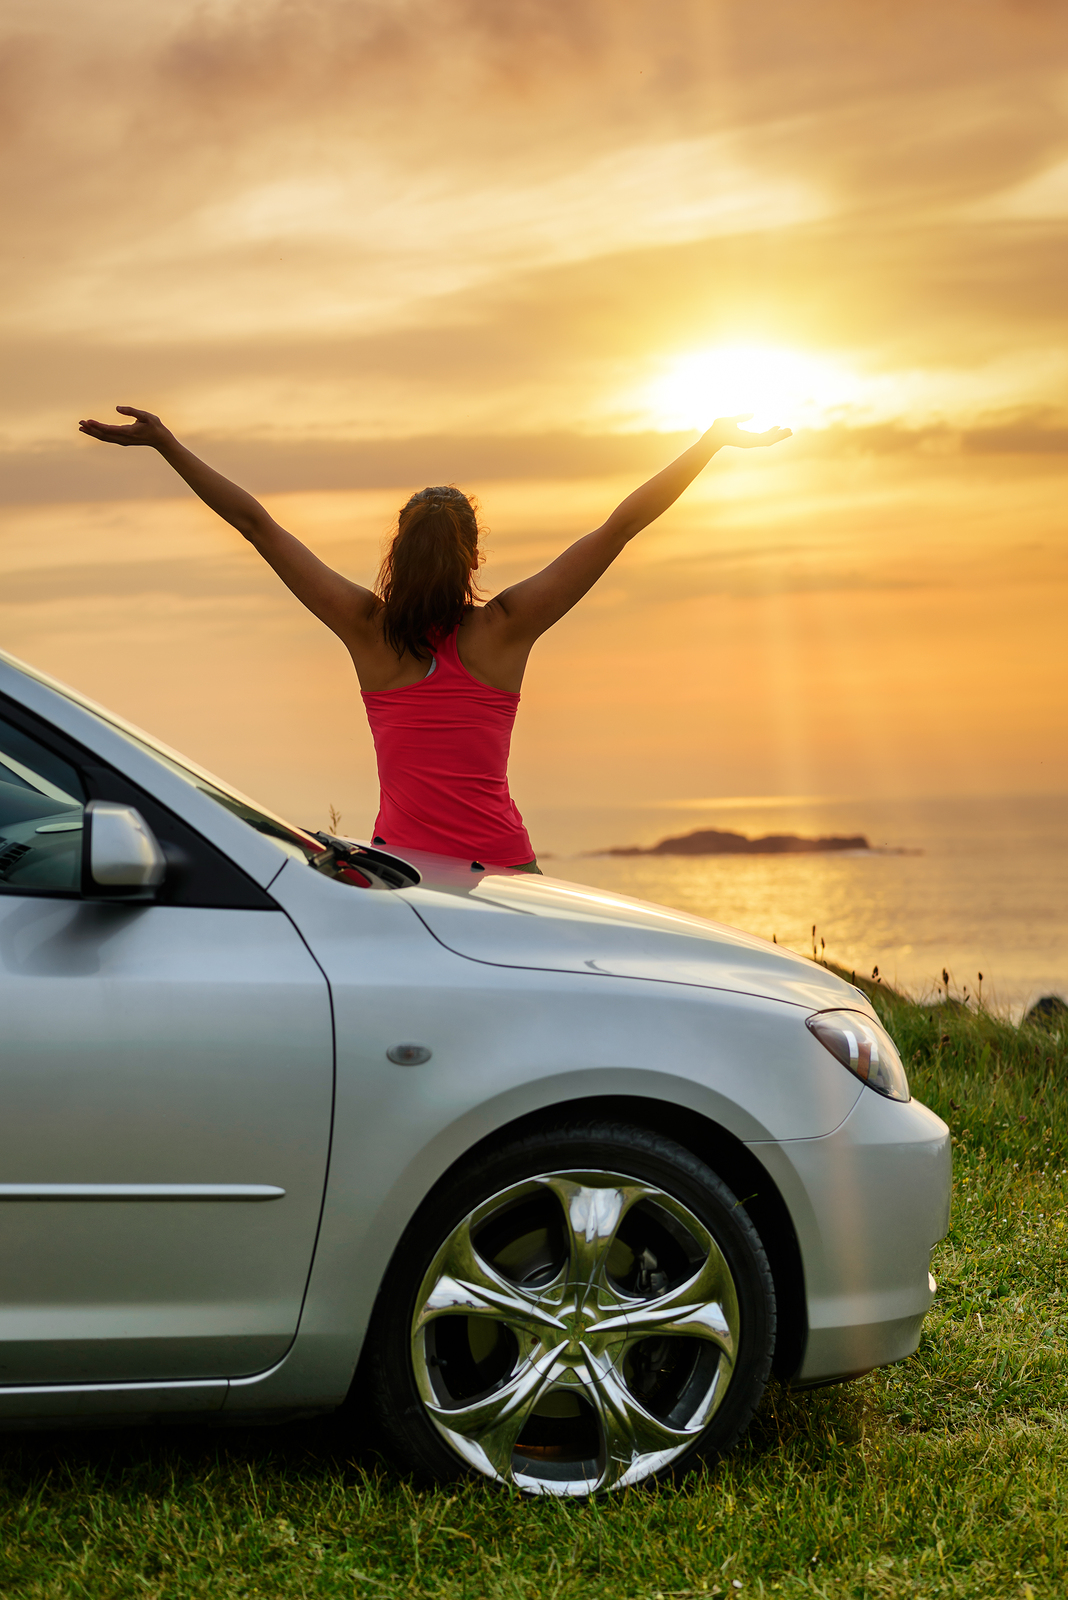 7 Reasons Why You Should Go On A Summer Road Trip Skymed